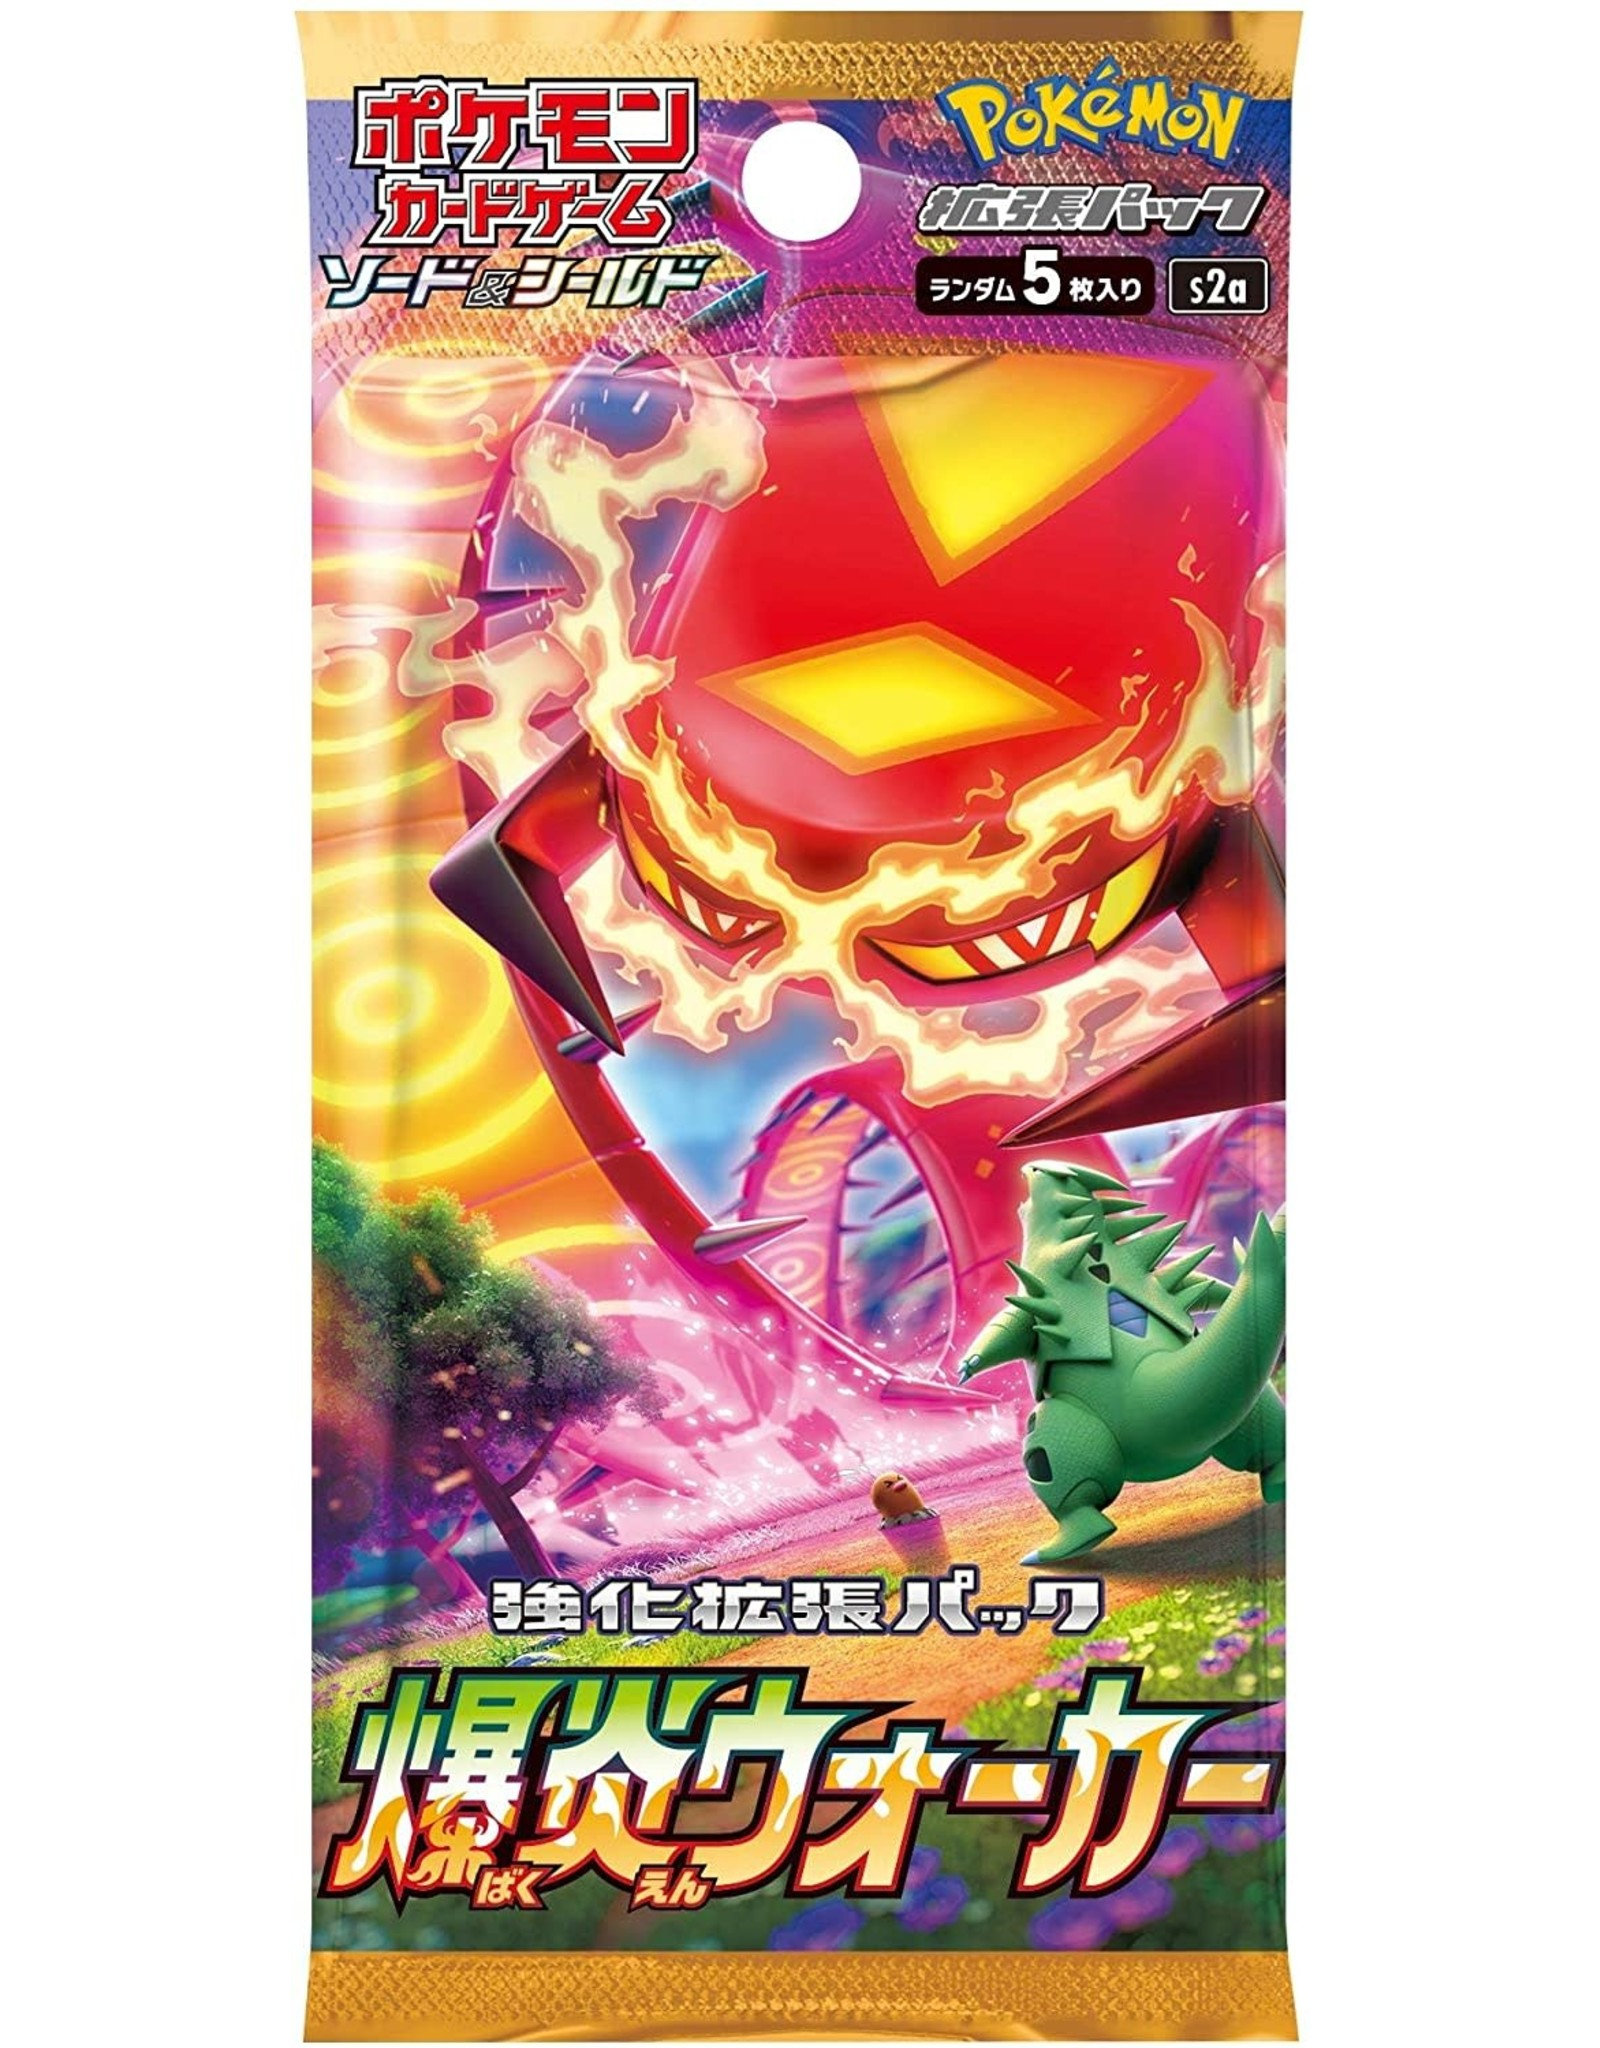 Pokémon Sword & Shield: Explosive Walker Booster Pack - Japanese edition (5 cards)